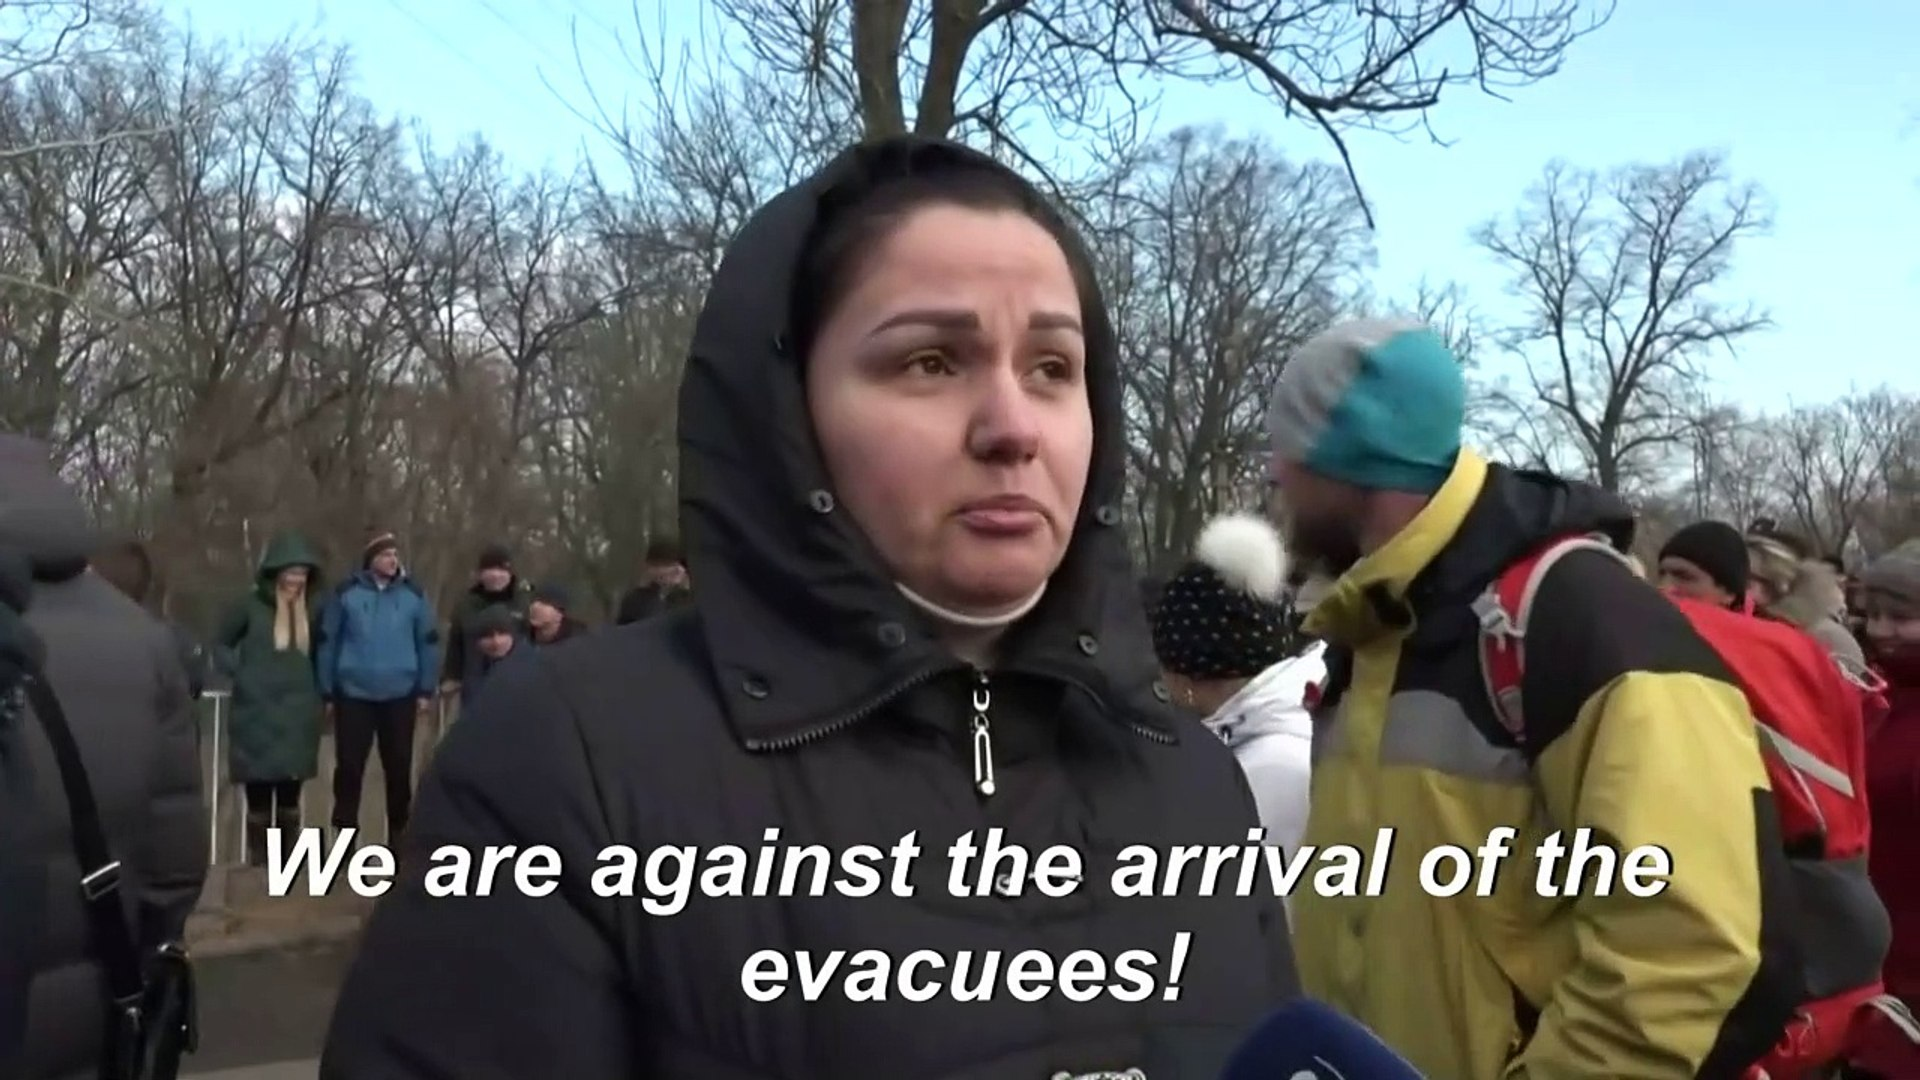 Ukraine protesters clash with police over China virus evacuees